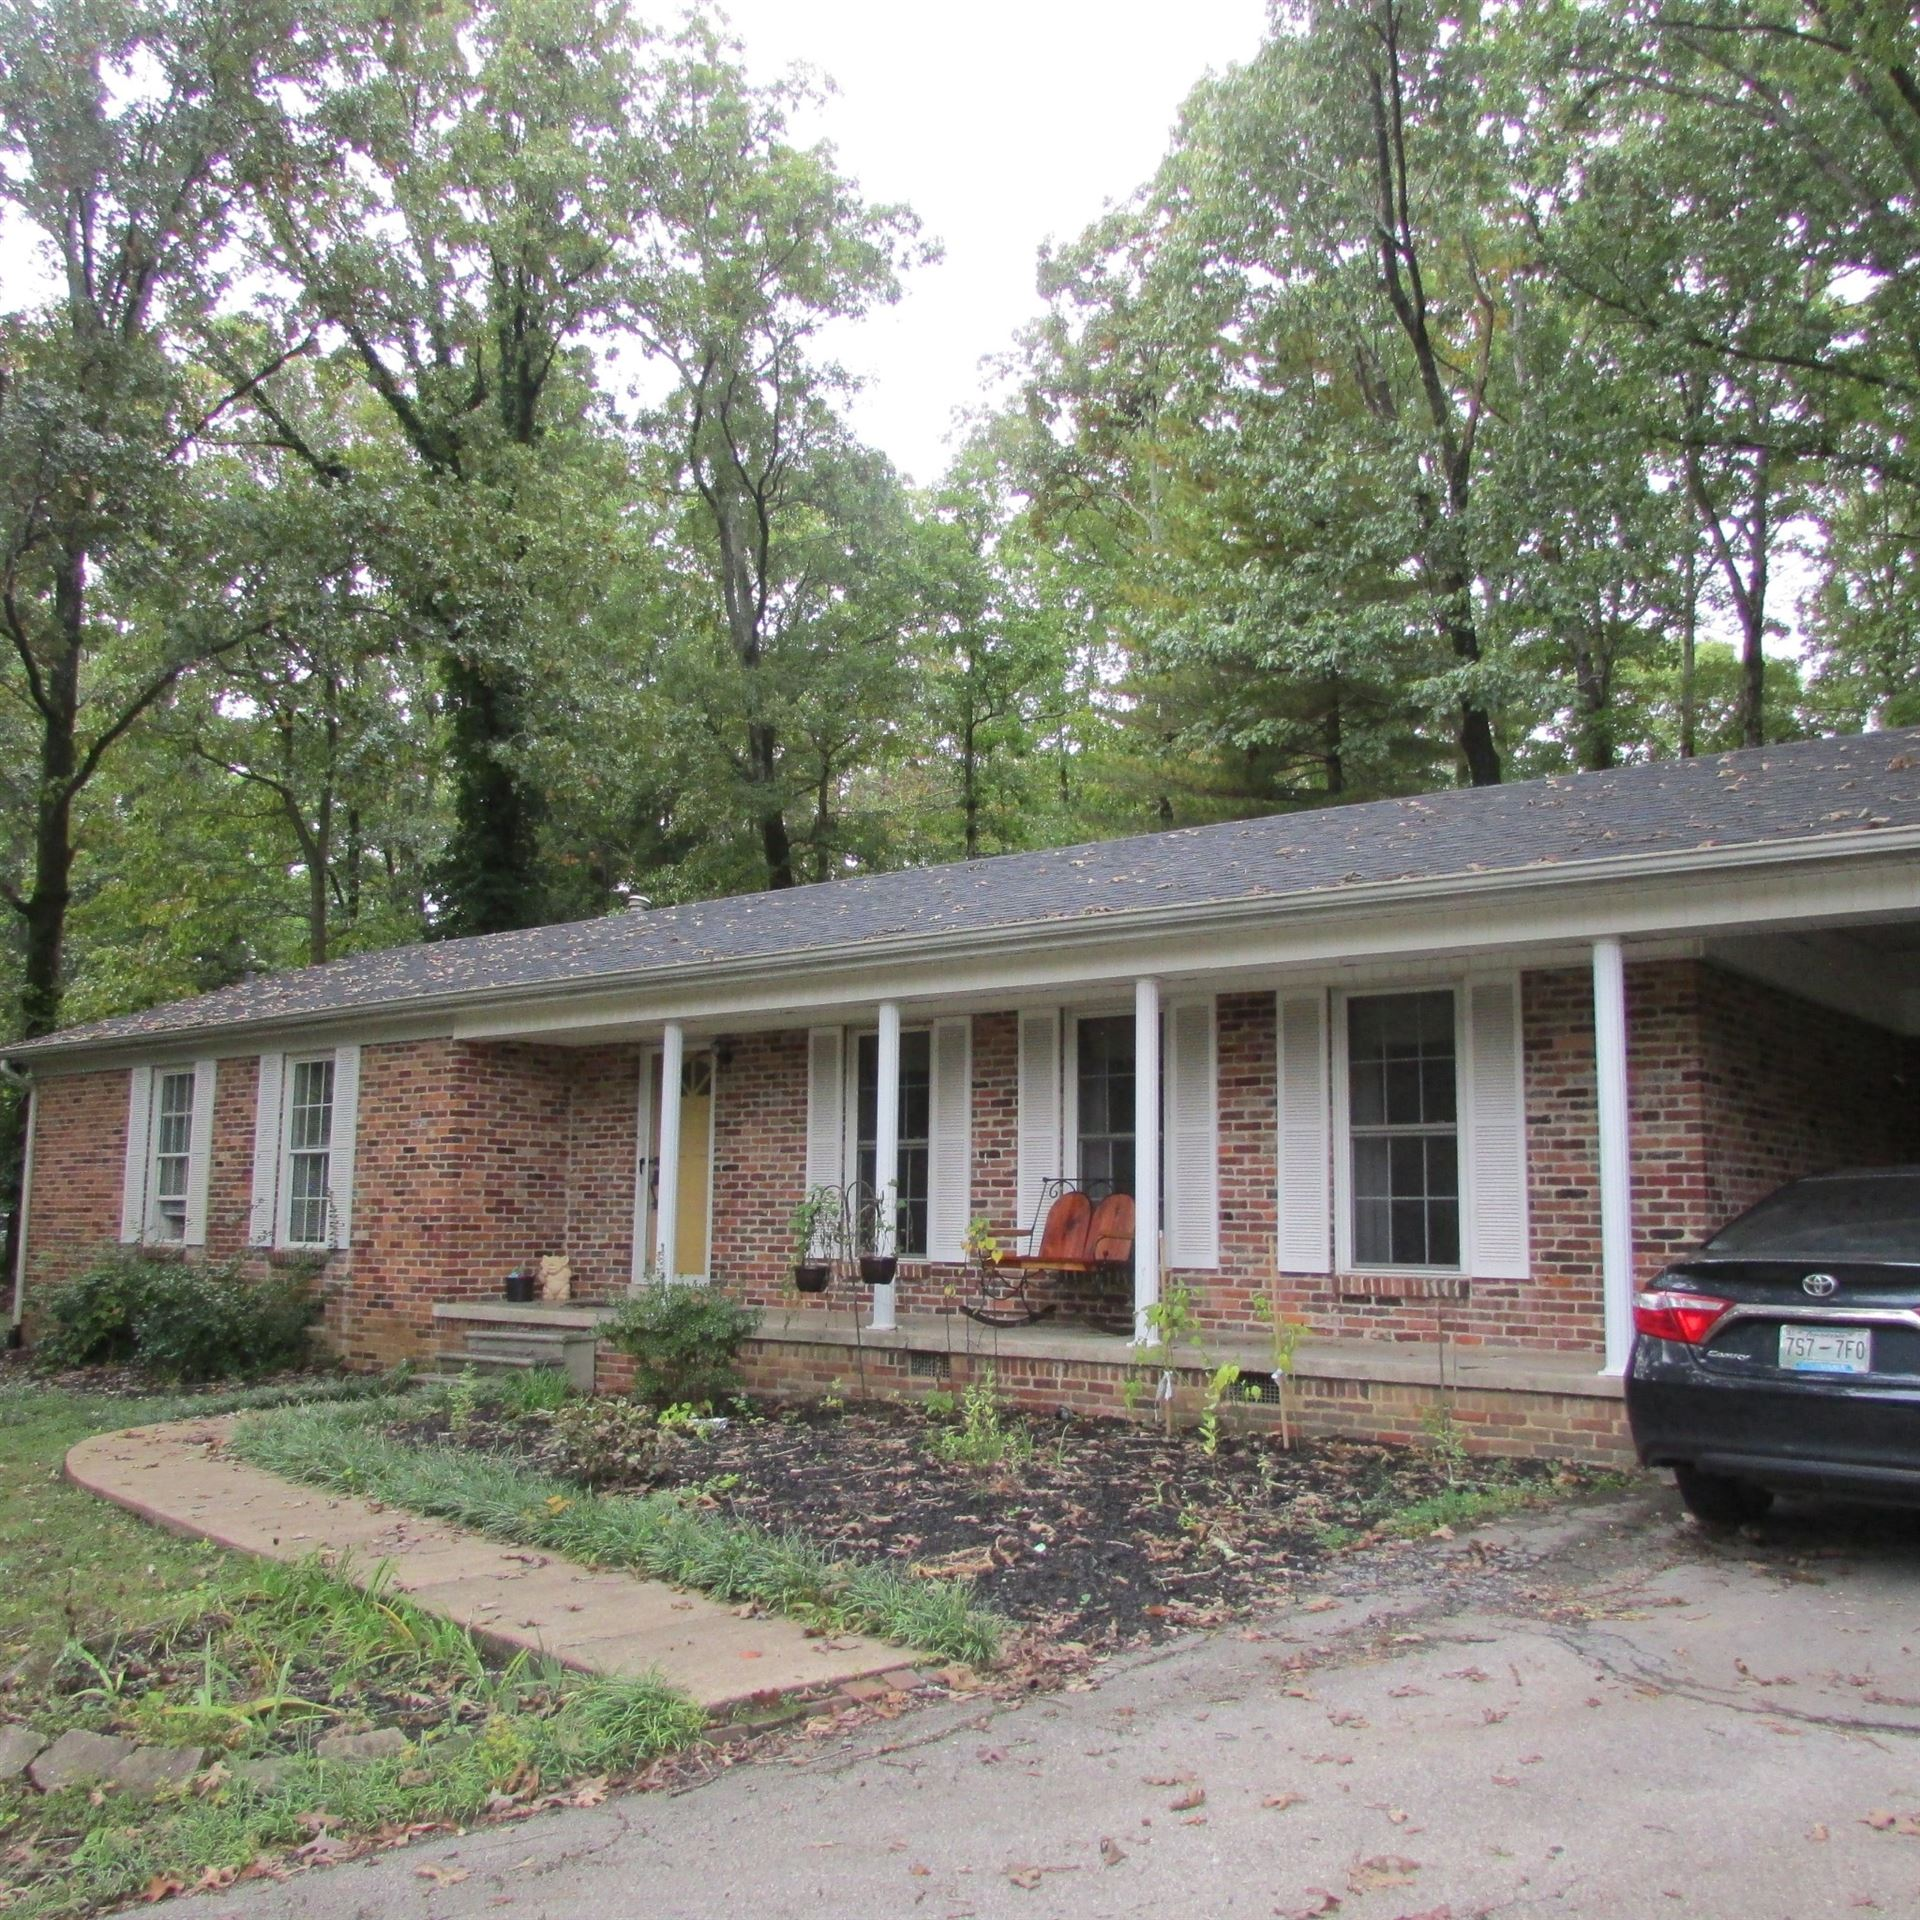 Photo of 310 Virginia Dr E, Lawrenceburg, TN 38464 (MLS # 2197945)